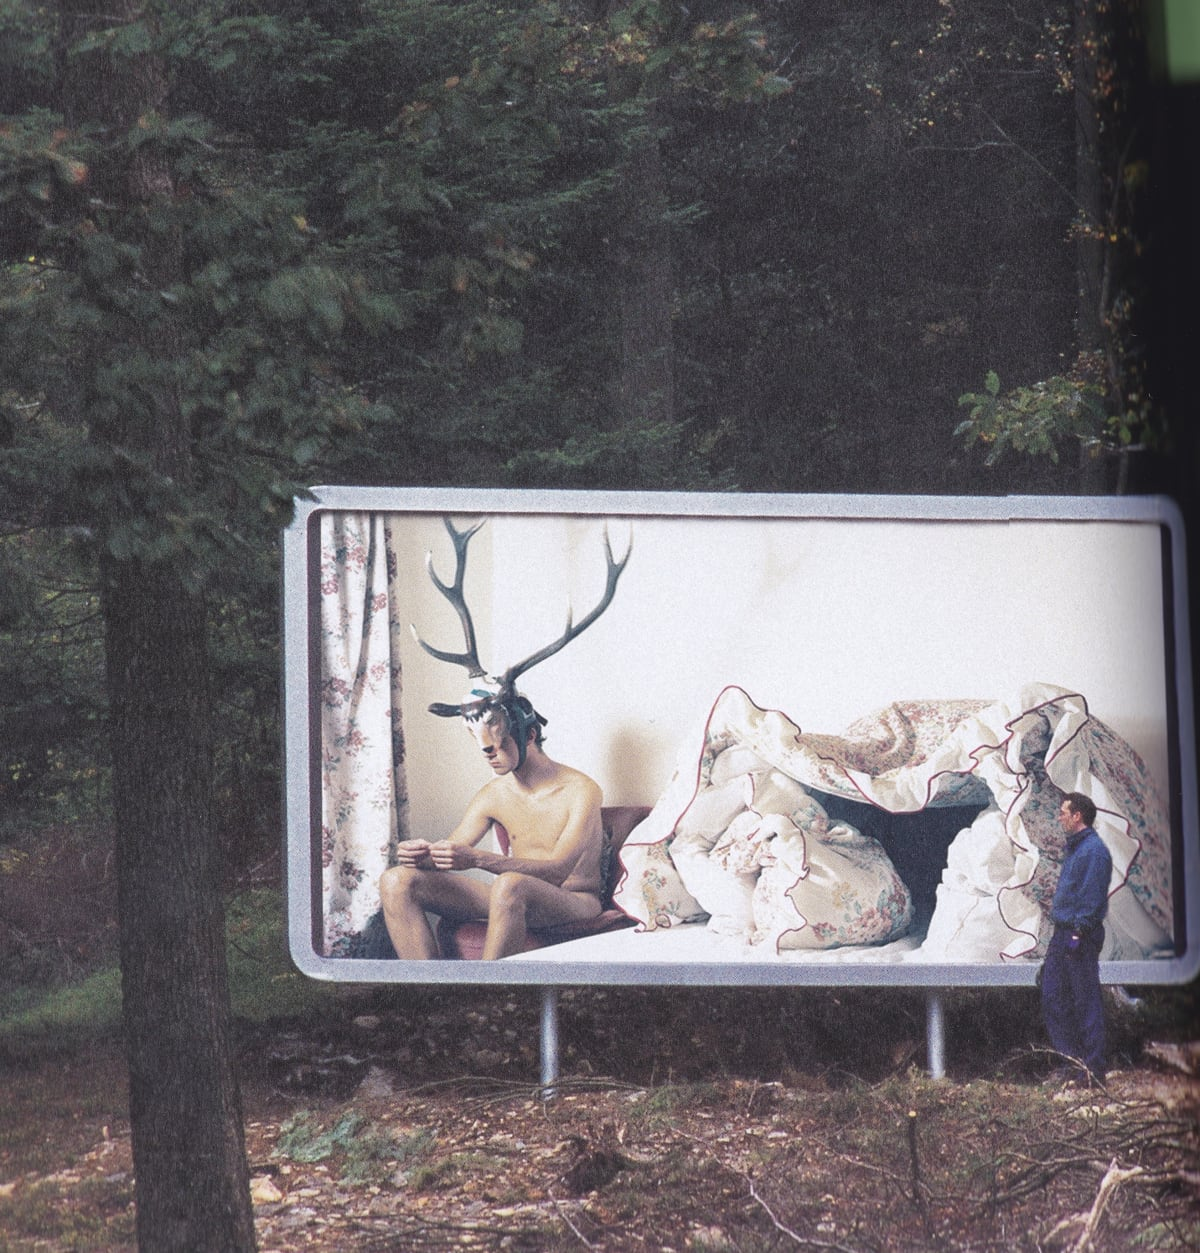 The Forest Billboard